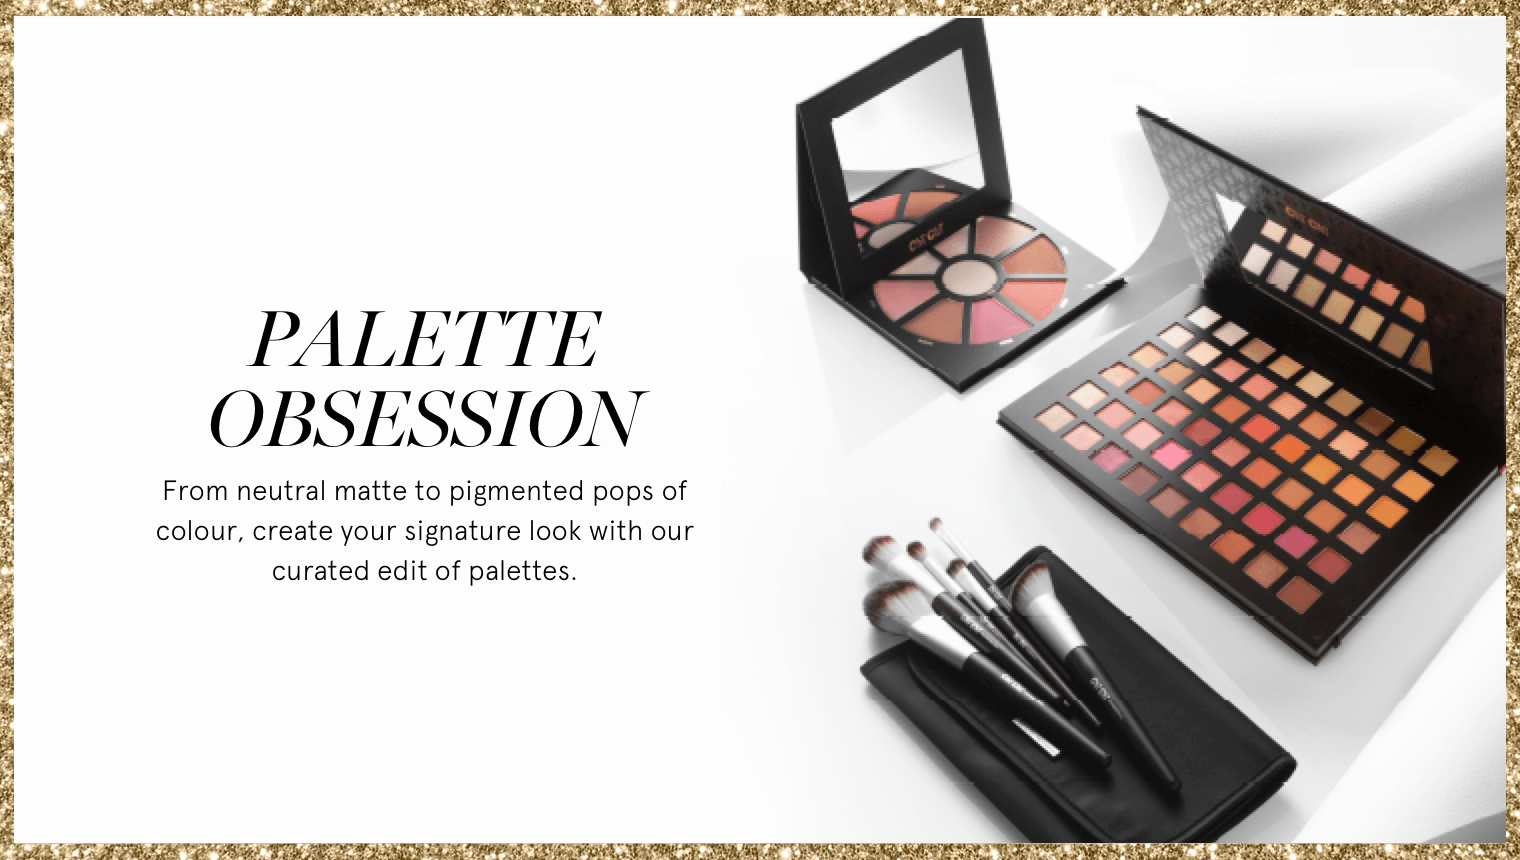 Palette Obsession